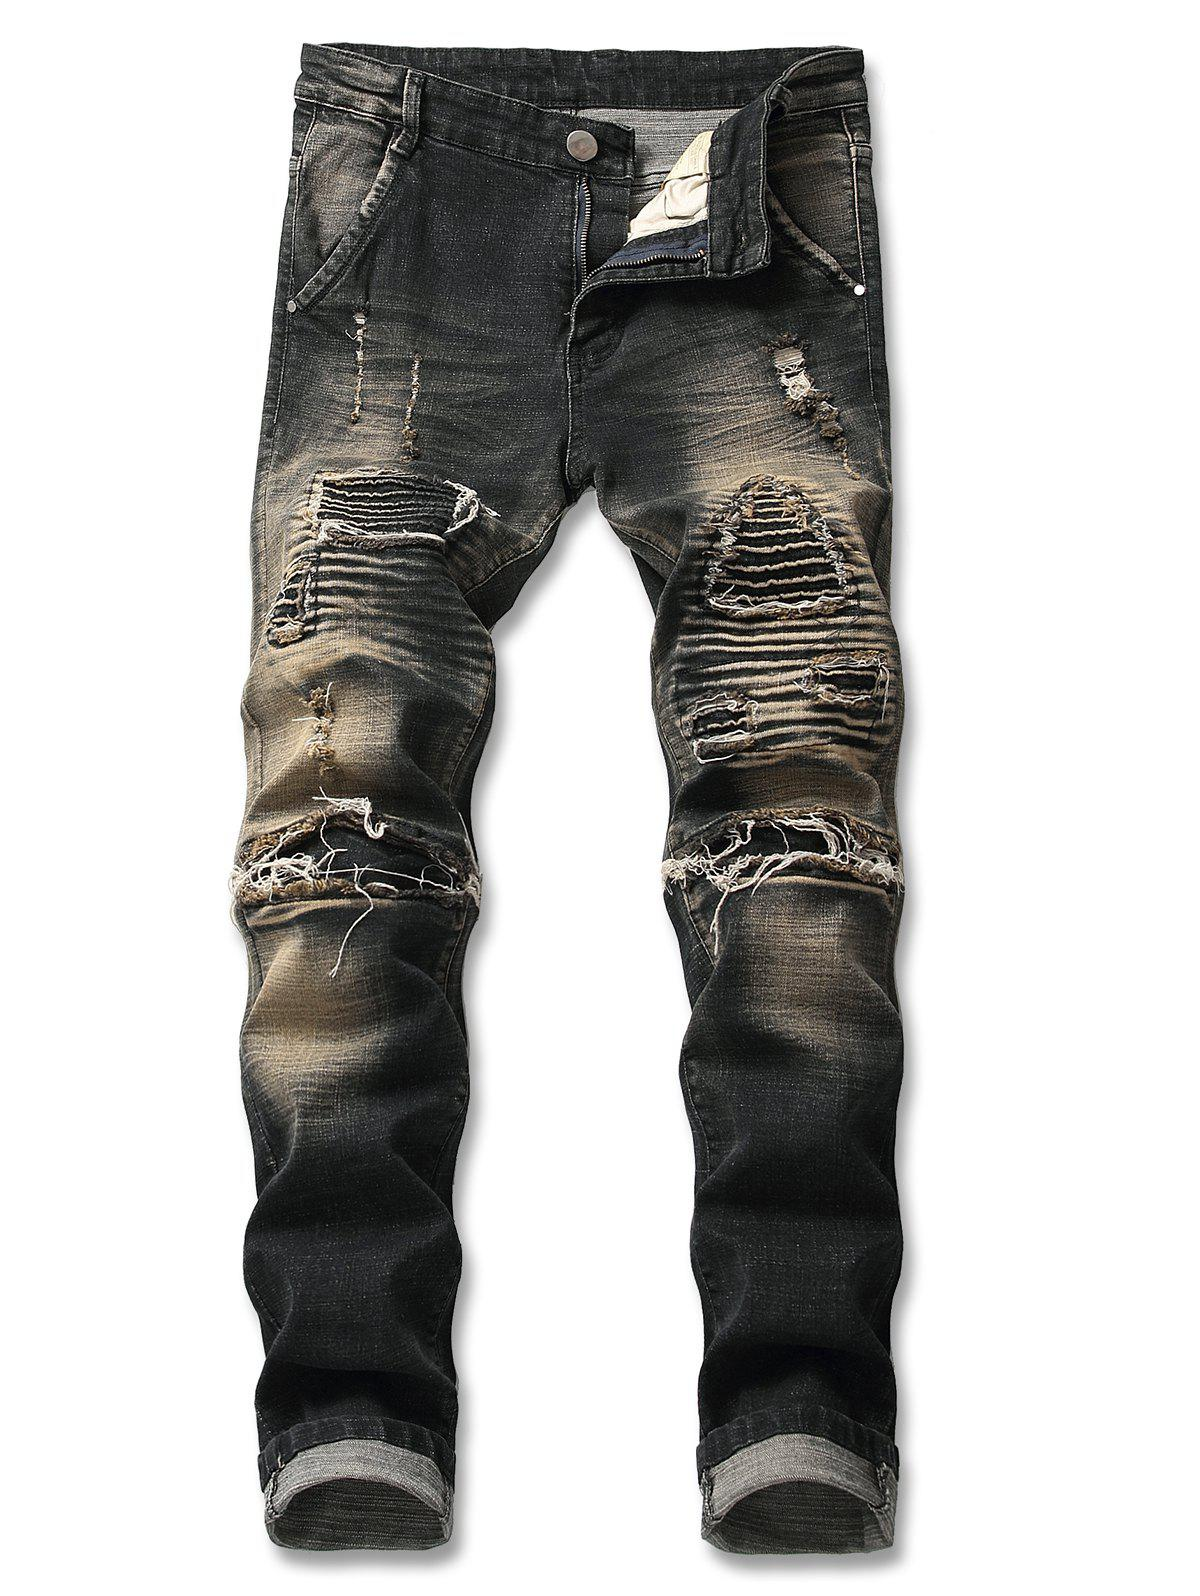 Store Light Wash Destroyed Zip Fly Biker Jeans